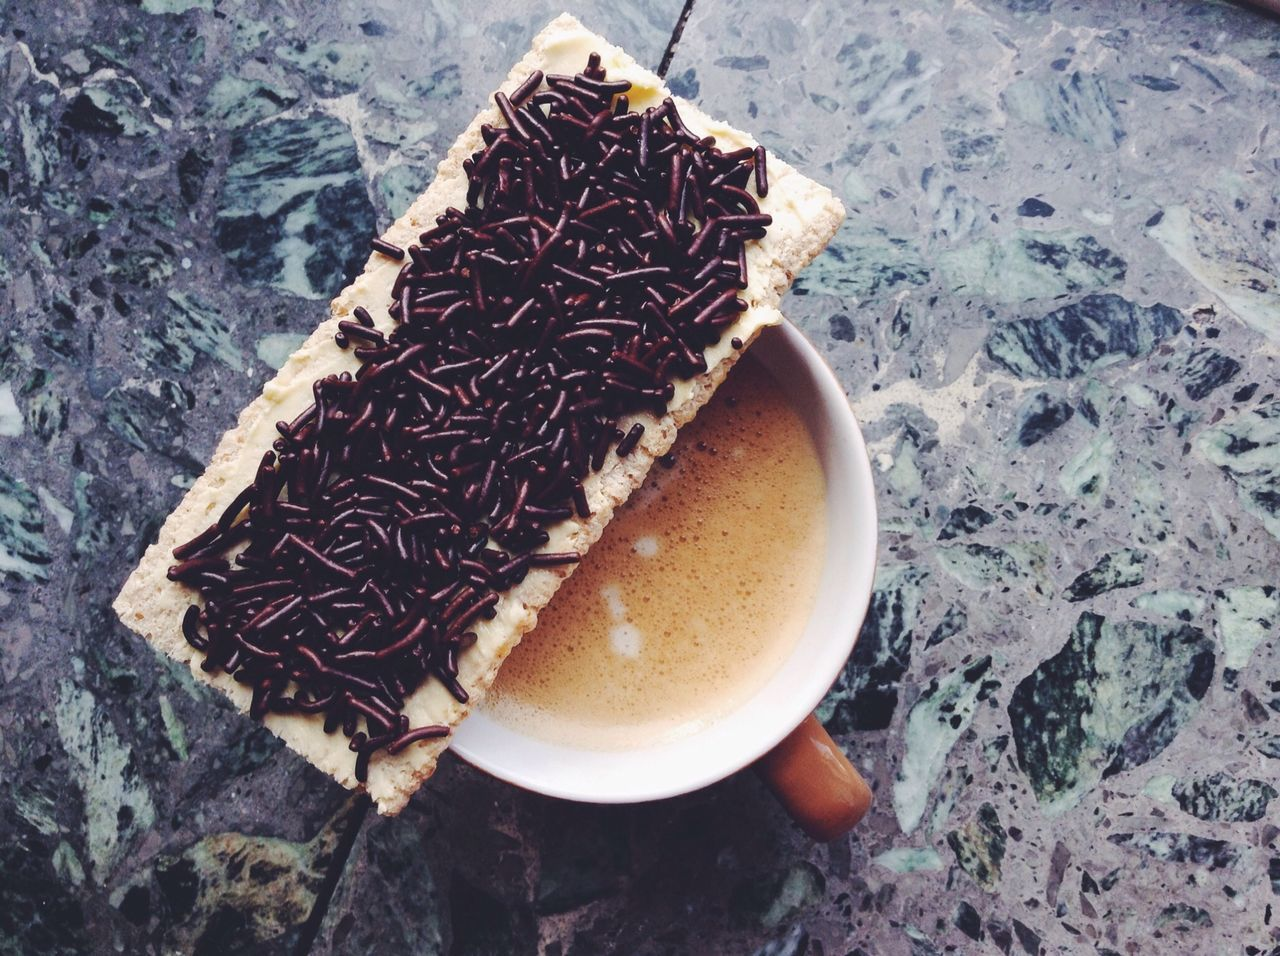 Breakfast Coffee Good Morning Coffee And Sweets The Foodie - 2015 EyeEm Awards